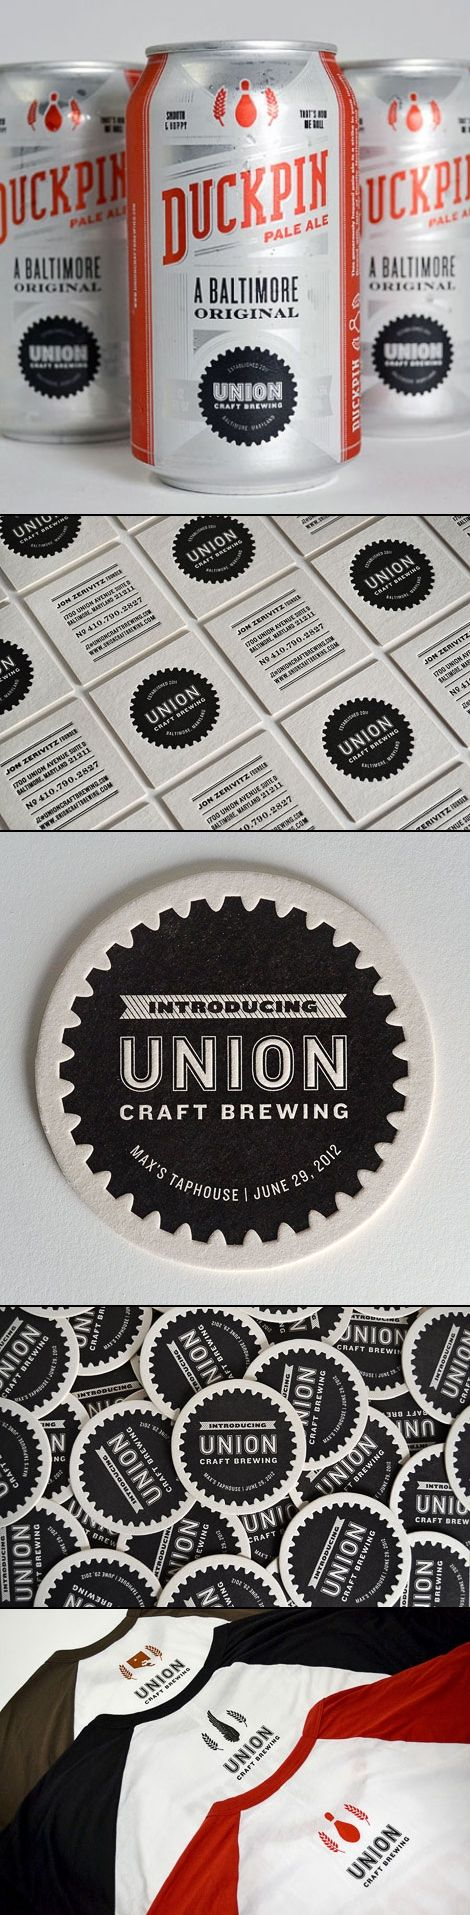 Union Craft Brewing | Gilah Press + Design #typography #branding . Another brewhouse identity. I'm kind of a sucker for it. Maybe it's just because it has to do with beer. :) Strong typefaces give it a classic feel.